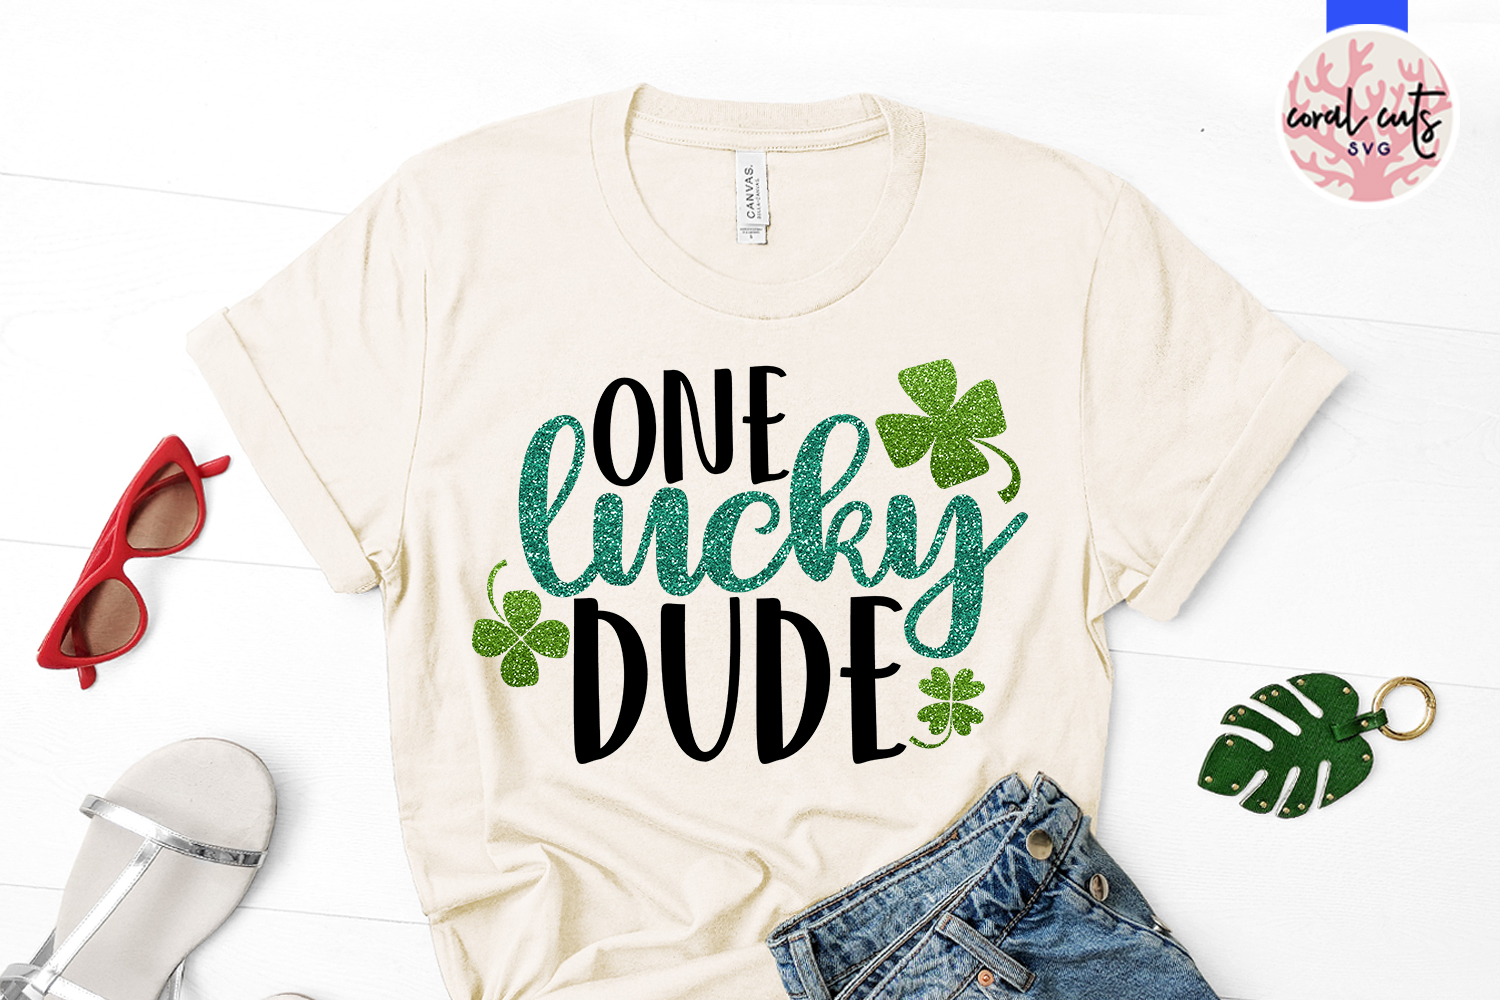 One lucky dude - St. Patrick's Day SVG EPS DXF PNG example image 2